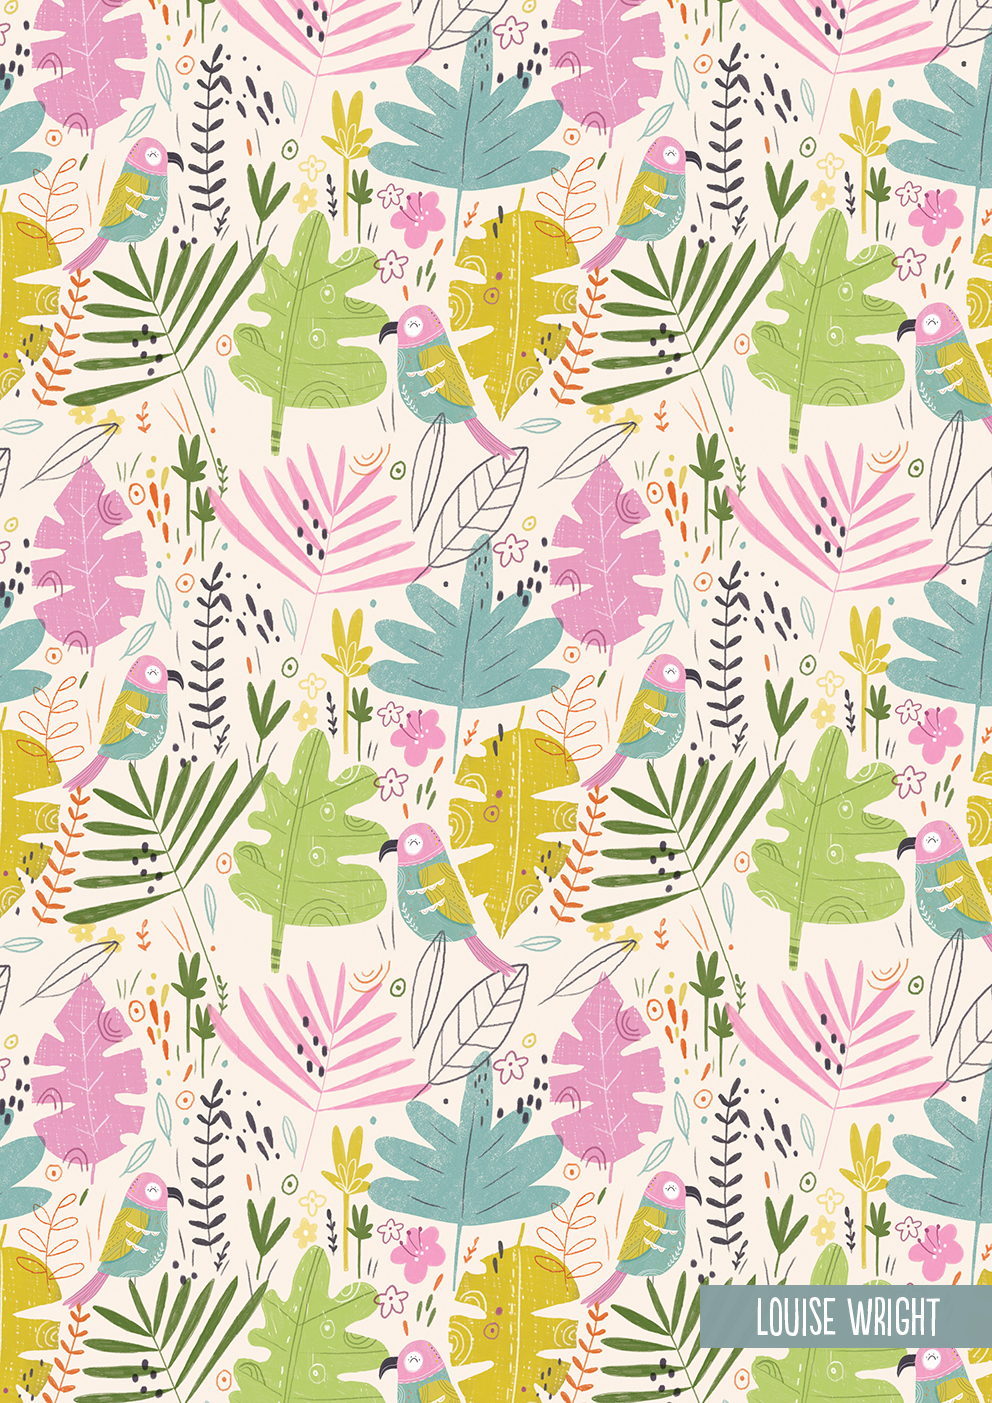 parrot pattern louise wright.jpg